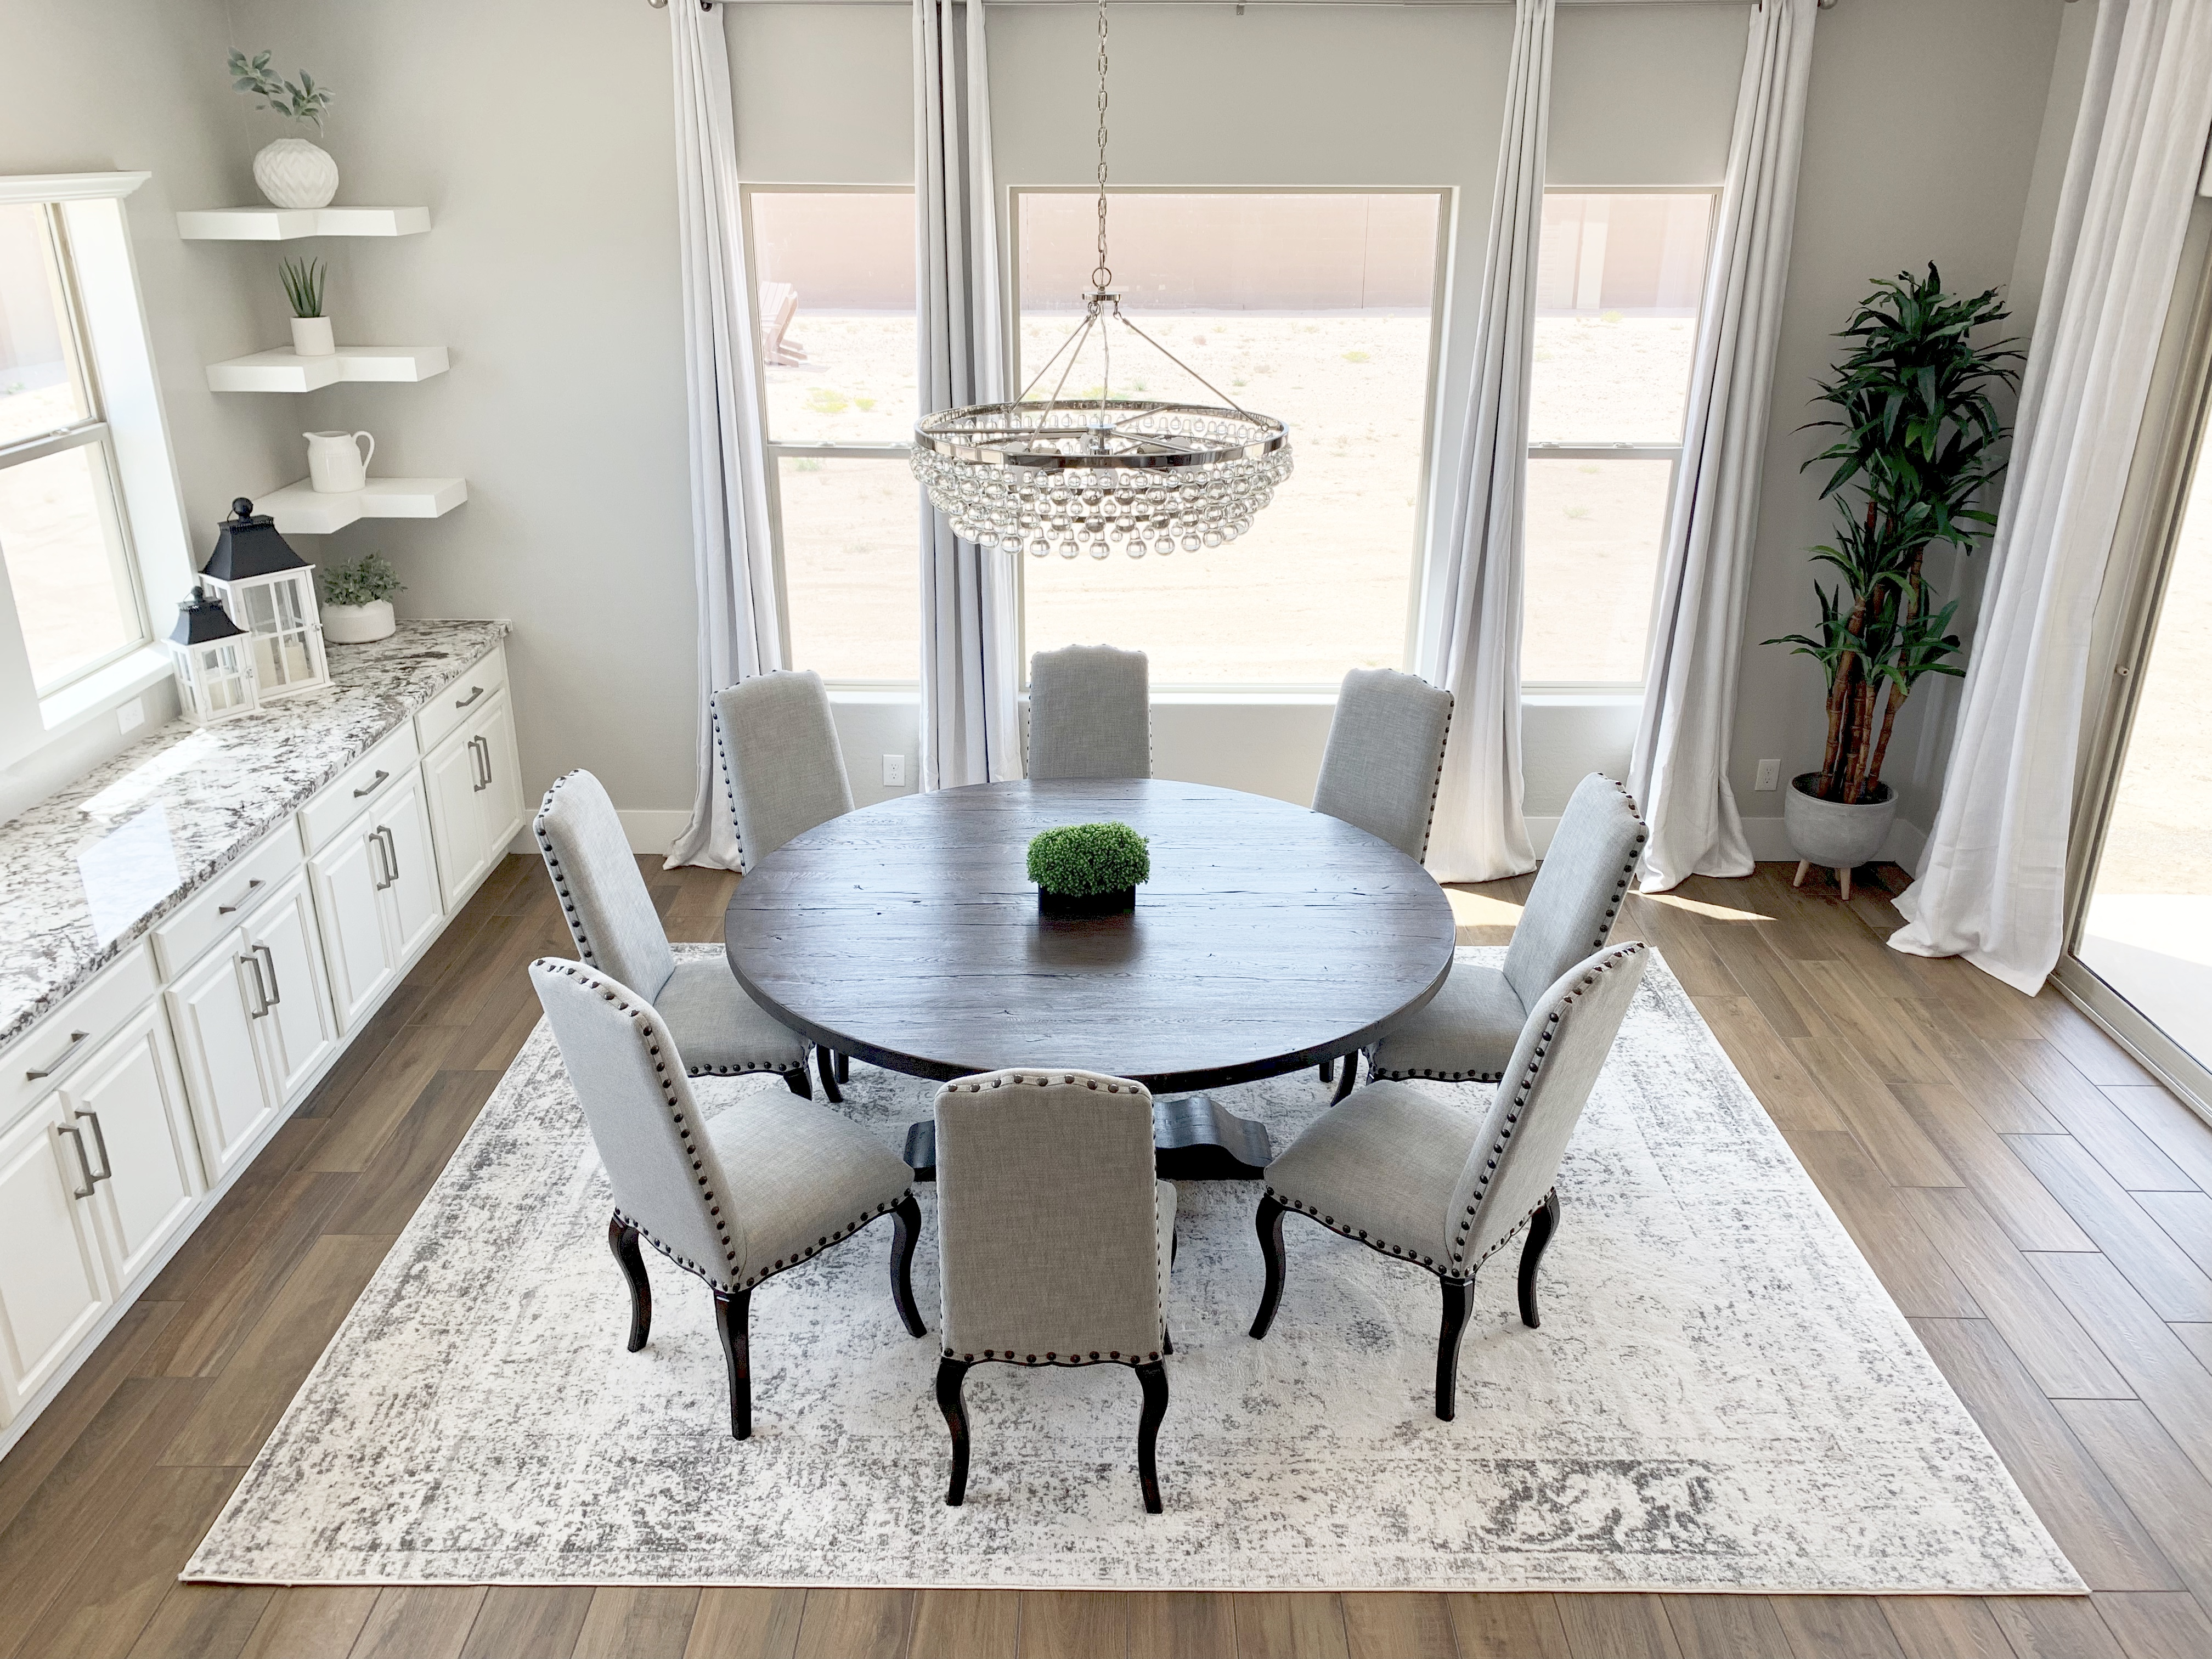 Modern Farmhouse Glam Dining Room and Kitchen Home Decor